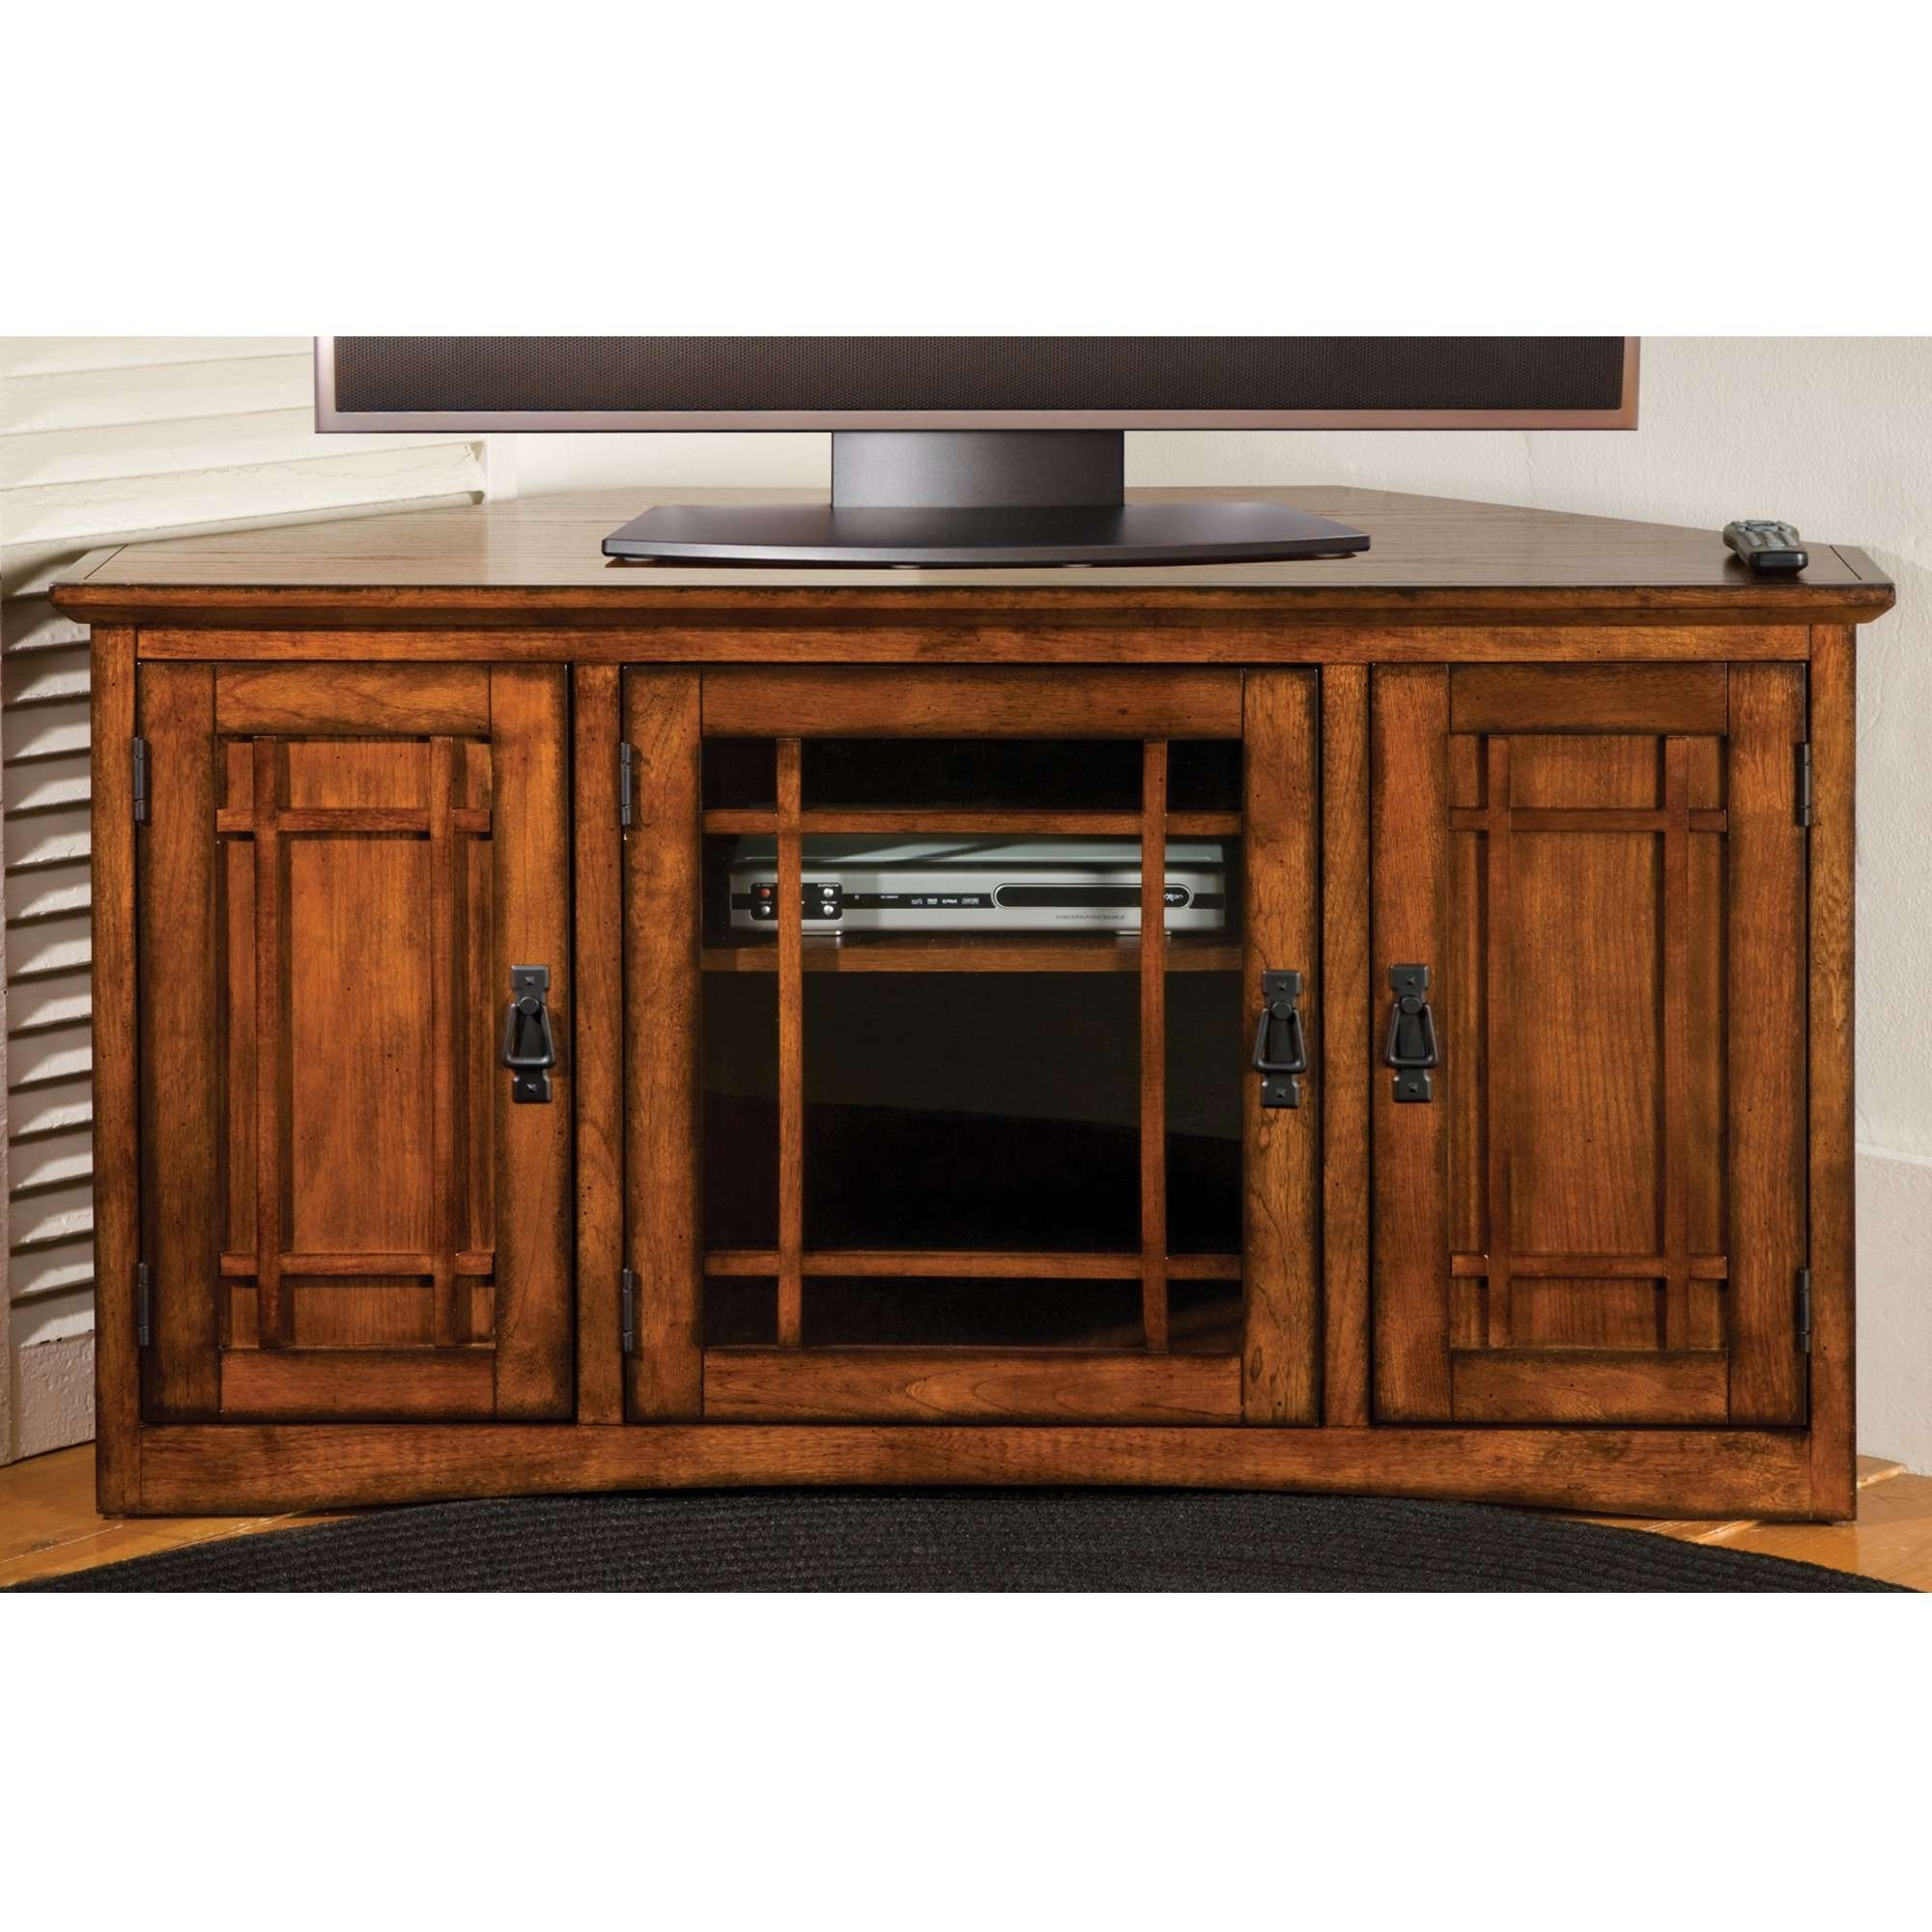 Mission Corner Tv Cabinet | Sturbridge Yankee Workshop In Corner Tv Cabinets With Hutch (View 4 of 20)